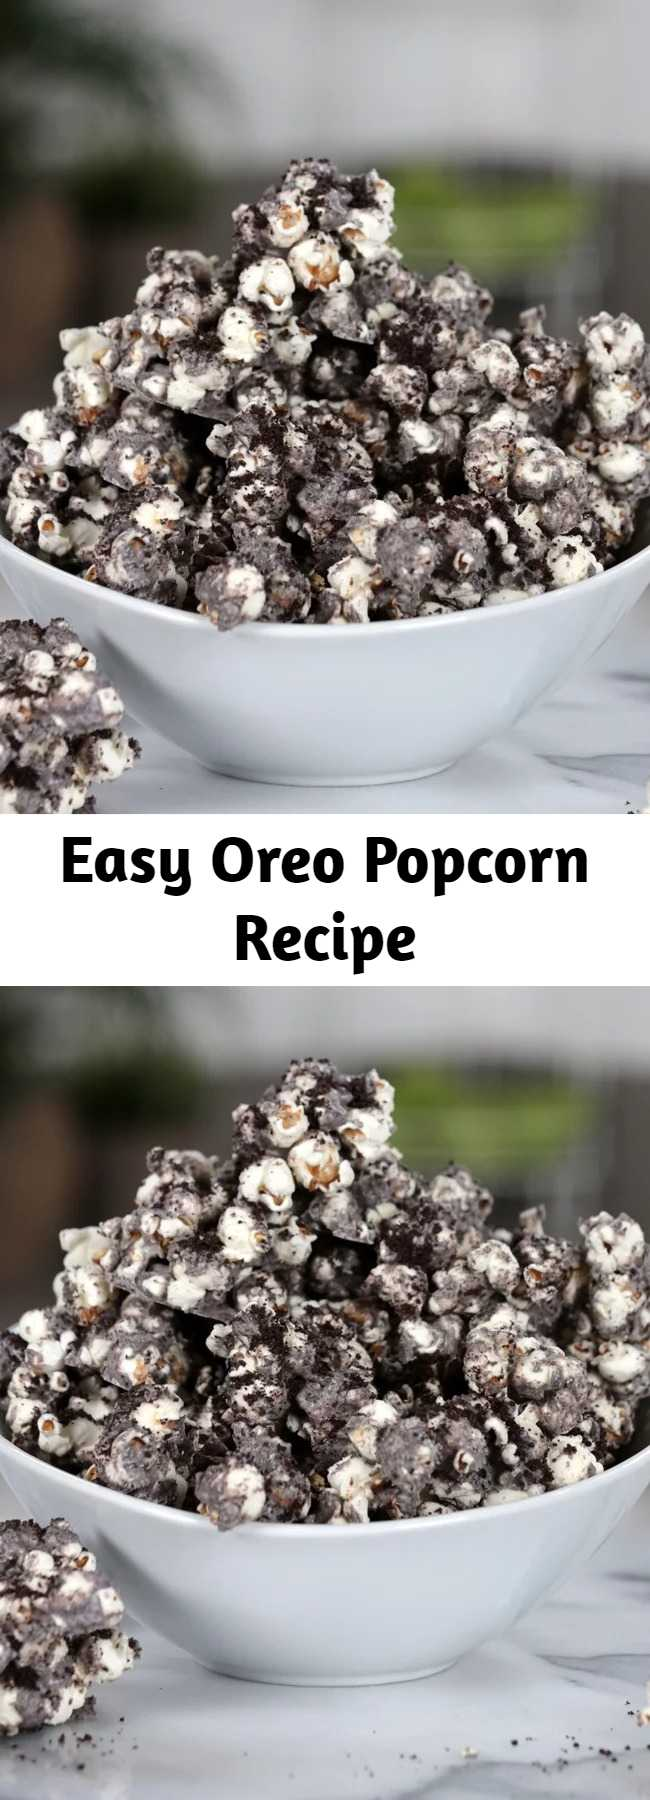 Easy Oreo Popcorn Recipe - Your snacking just got a whole lot better with this easy upgrade for regular old popcorn. With a cookies and cream coating and crushed Oreos on top, this popcorn is a heavenly pairing with a good Summer blockbuster.